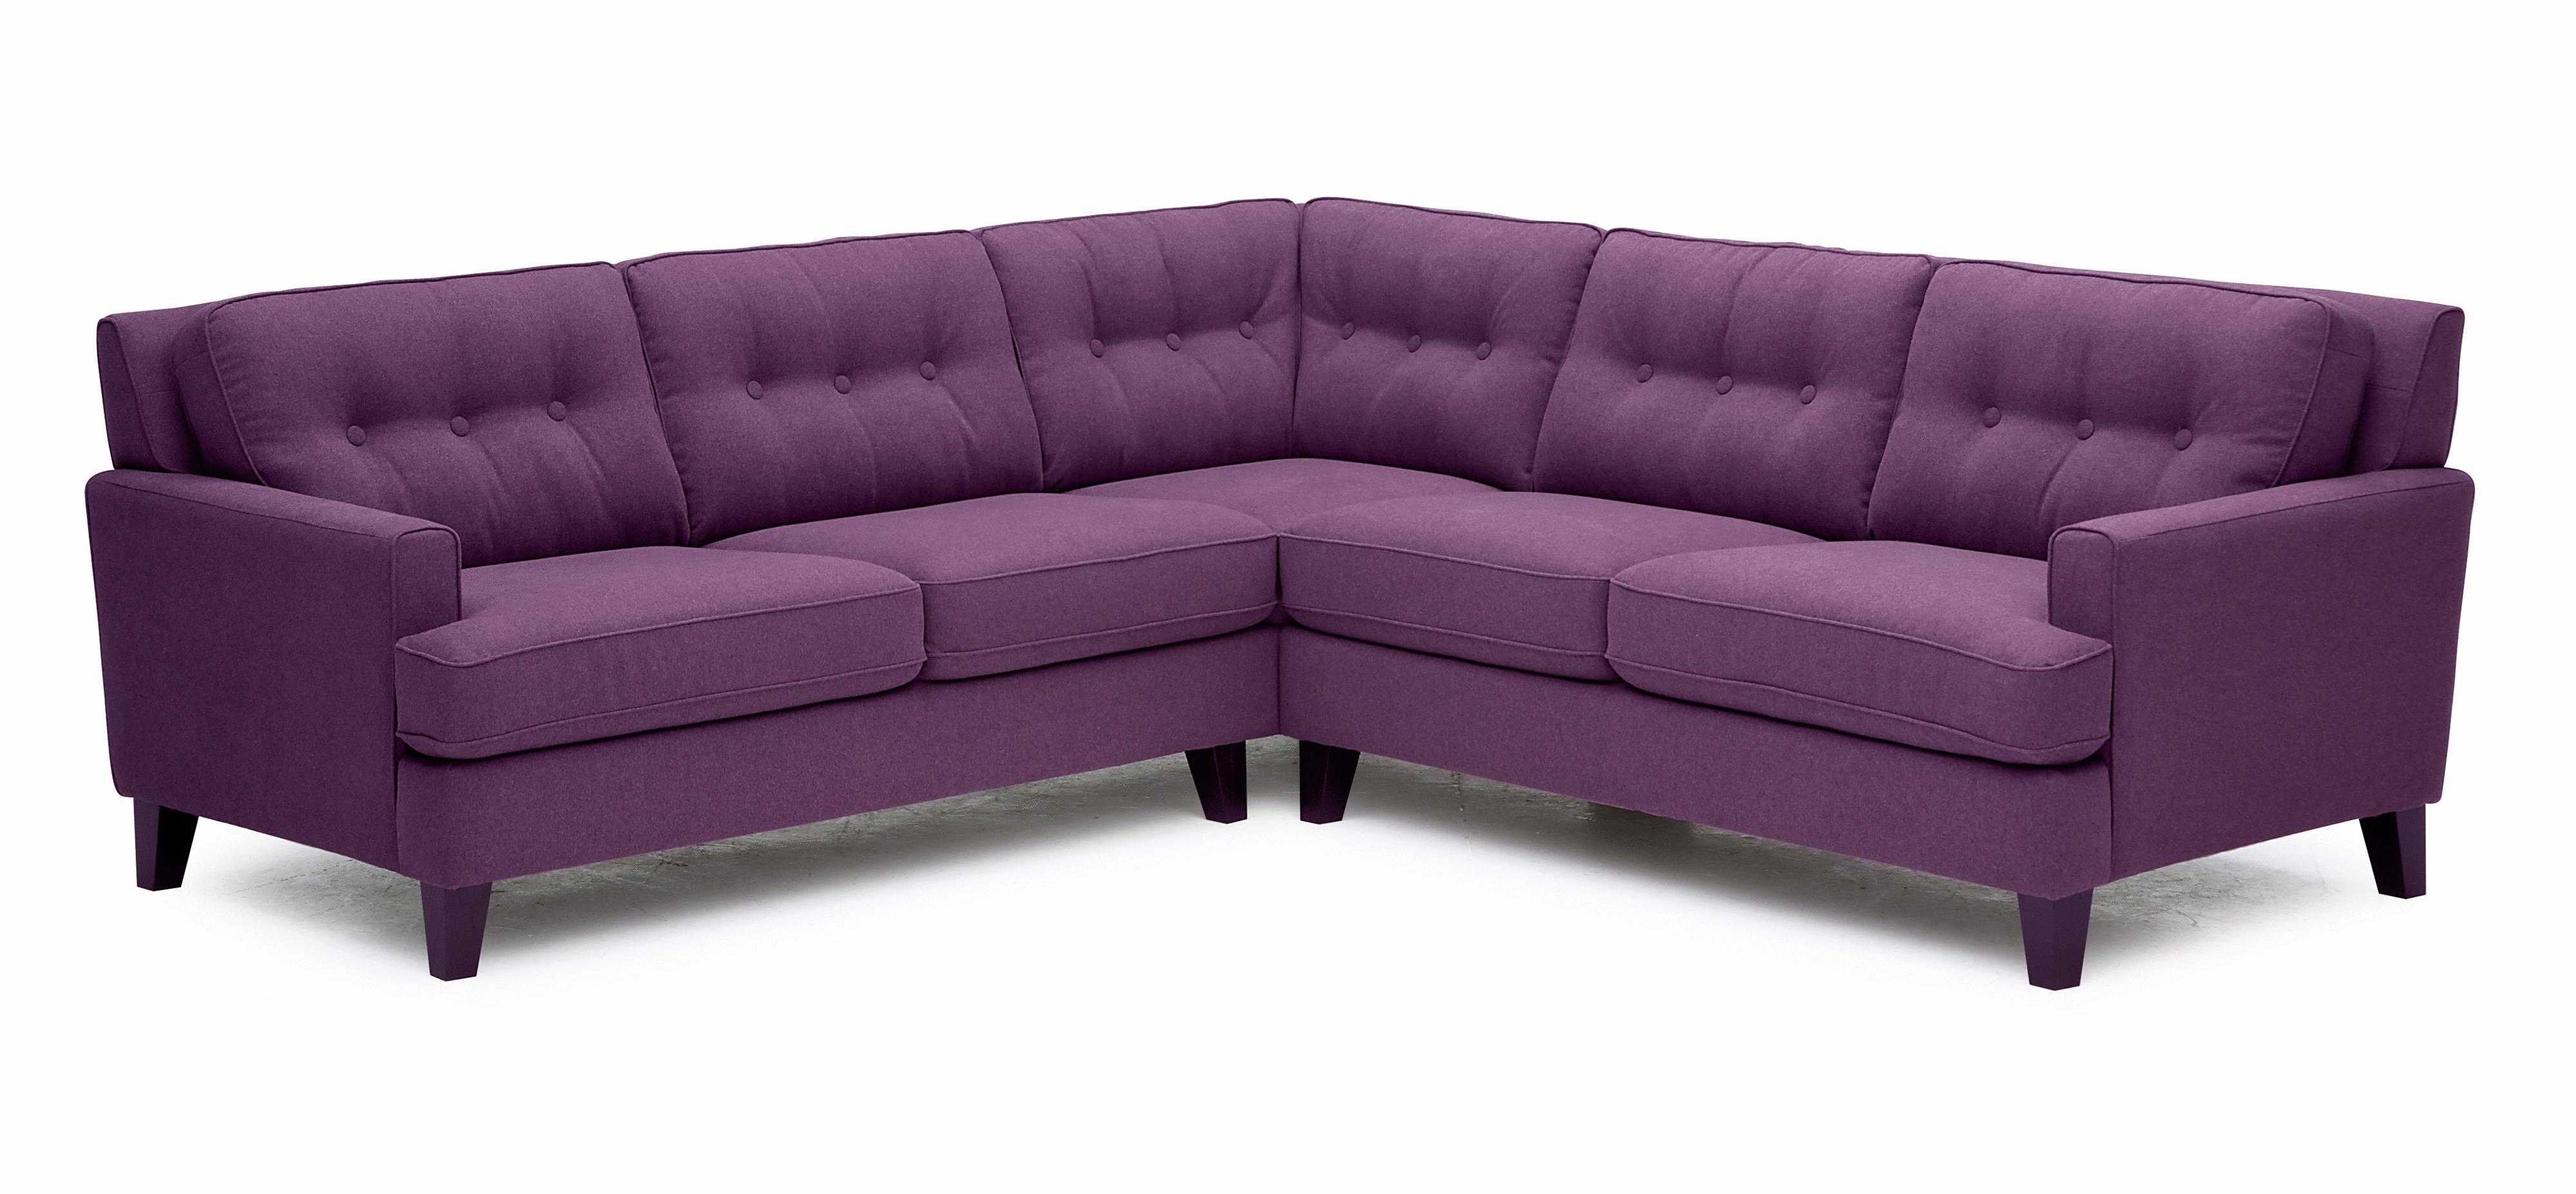 palliser barbara transitional sectional sofa with lhf loveseat